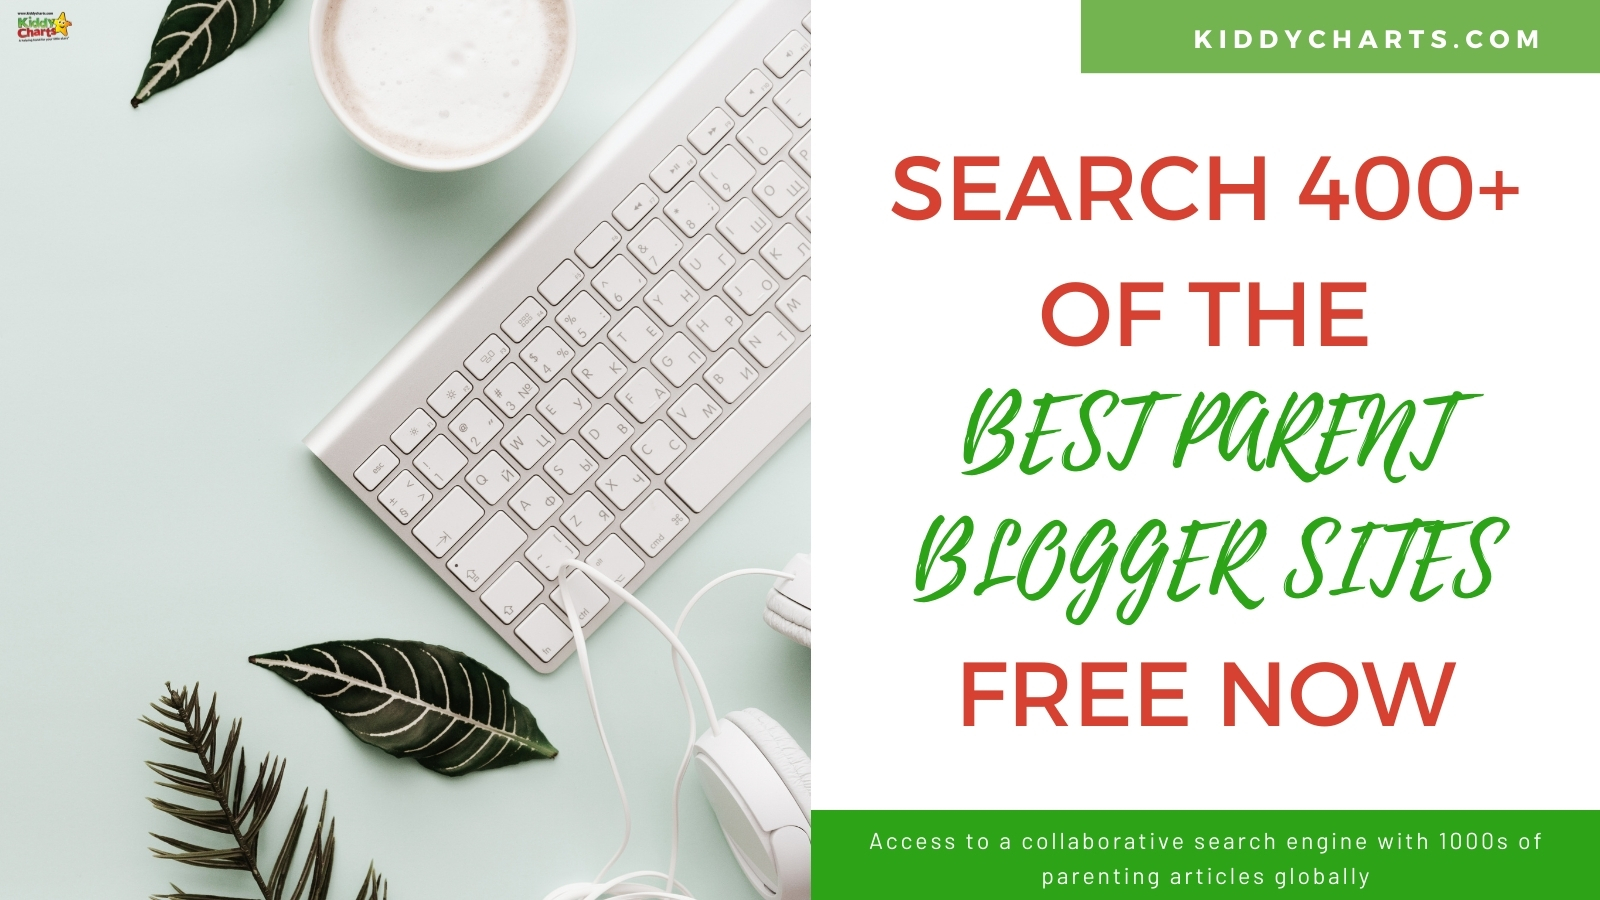 Best parenting bloggers: How to find awesome articles from 400+ parent bloggers now